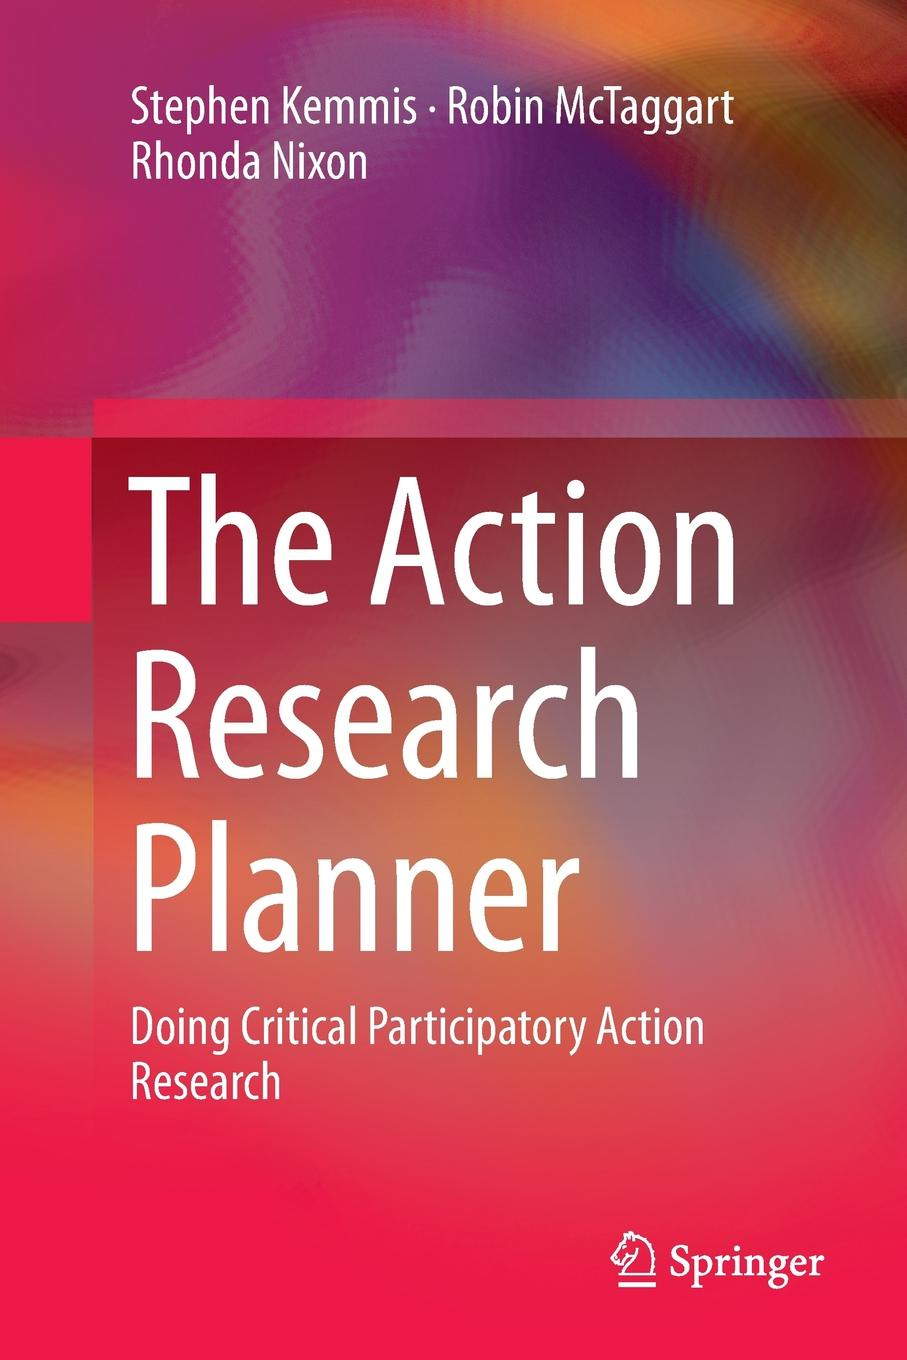 цена на Stephen Kemmis, Robin McTaggart, Rhonda Nixon The Action Research Planner. Doing Critical Participatory Action Research